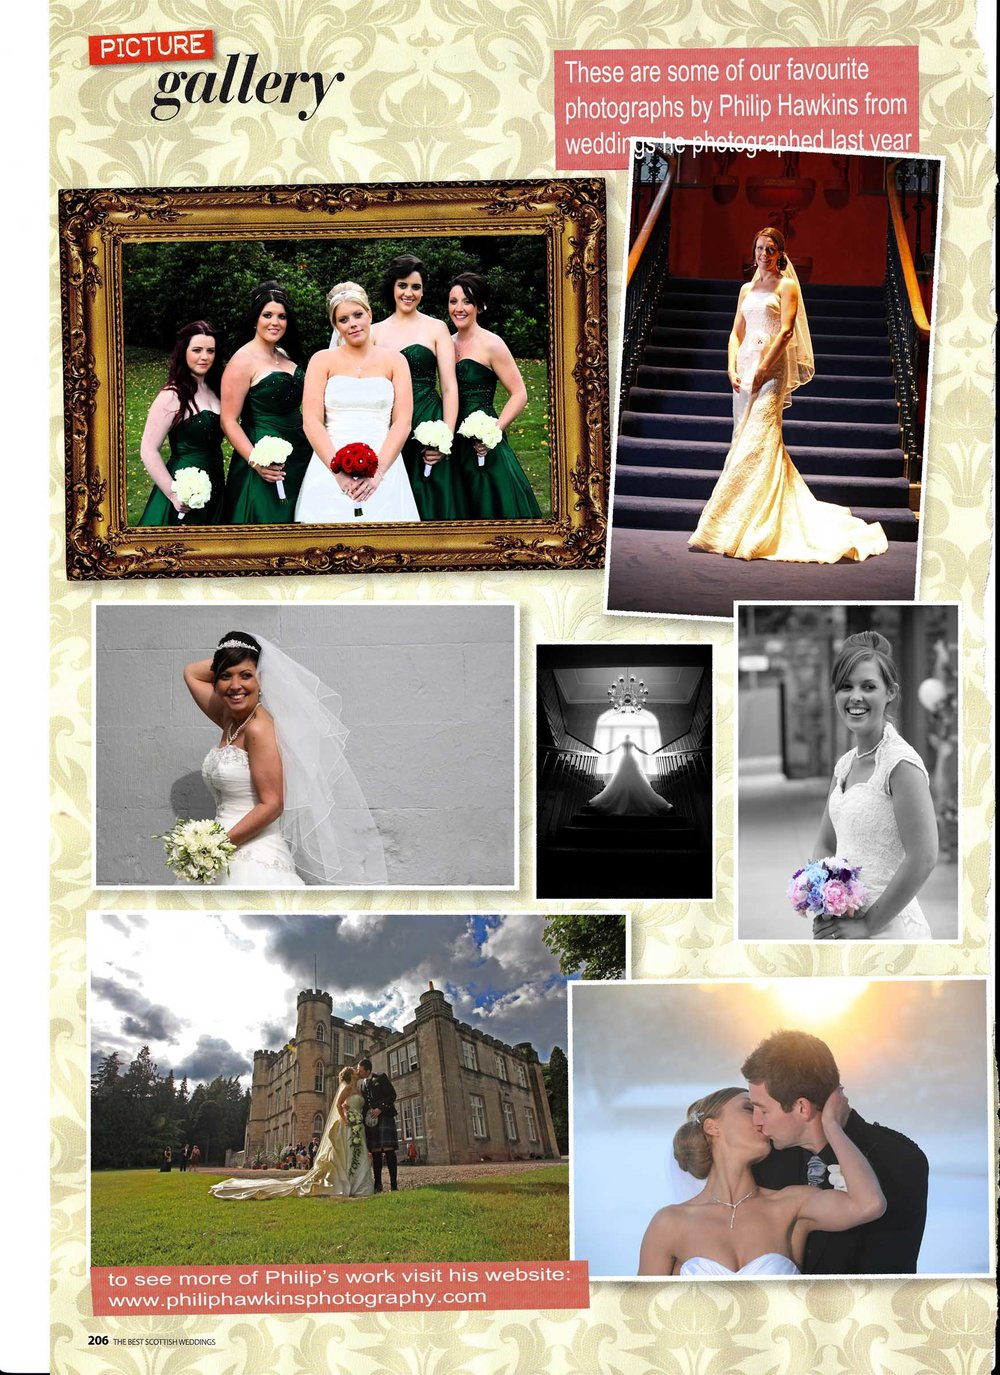 Wedding Photographer magazine feature of Philip Hawkins